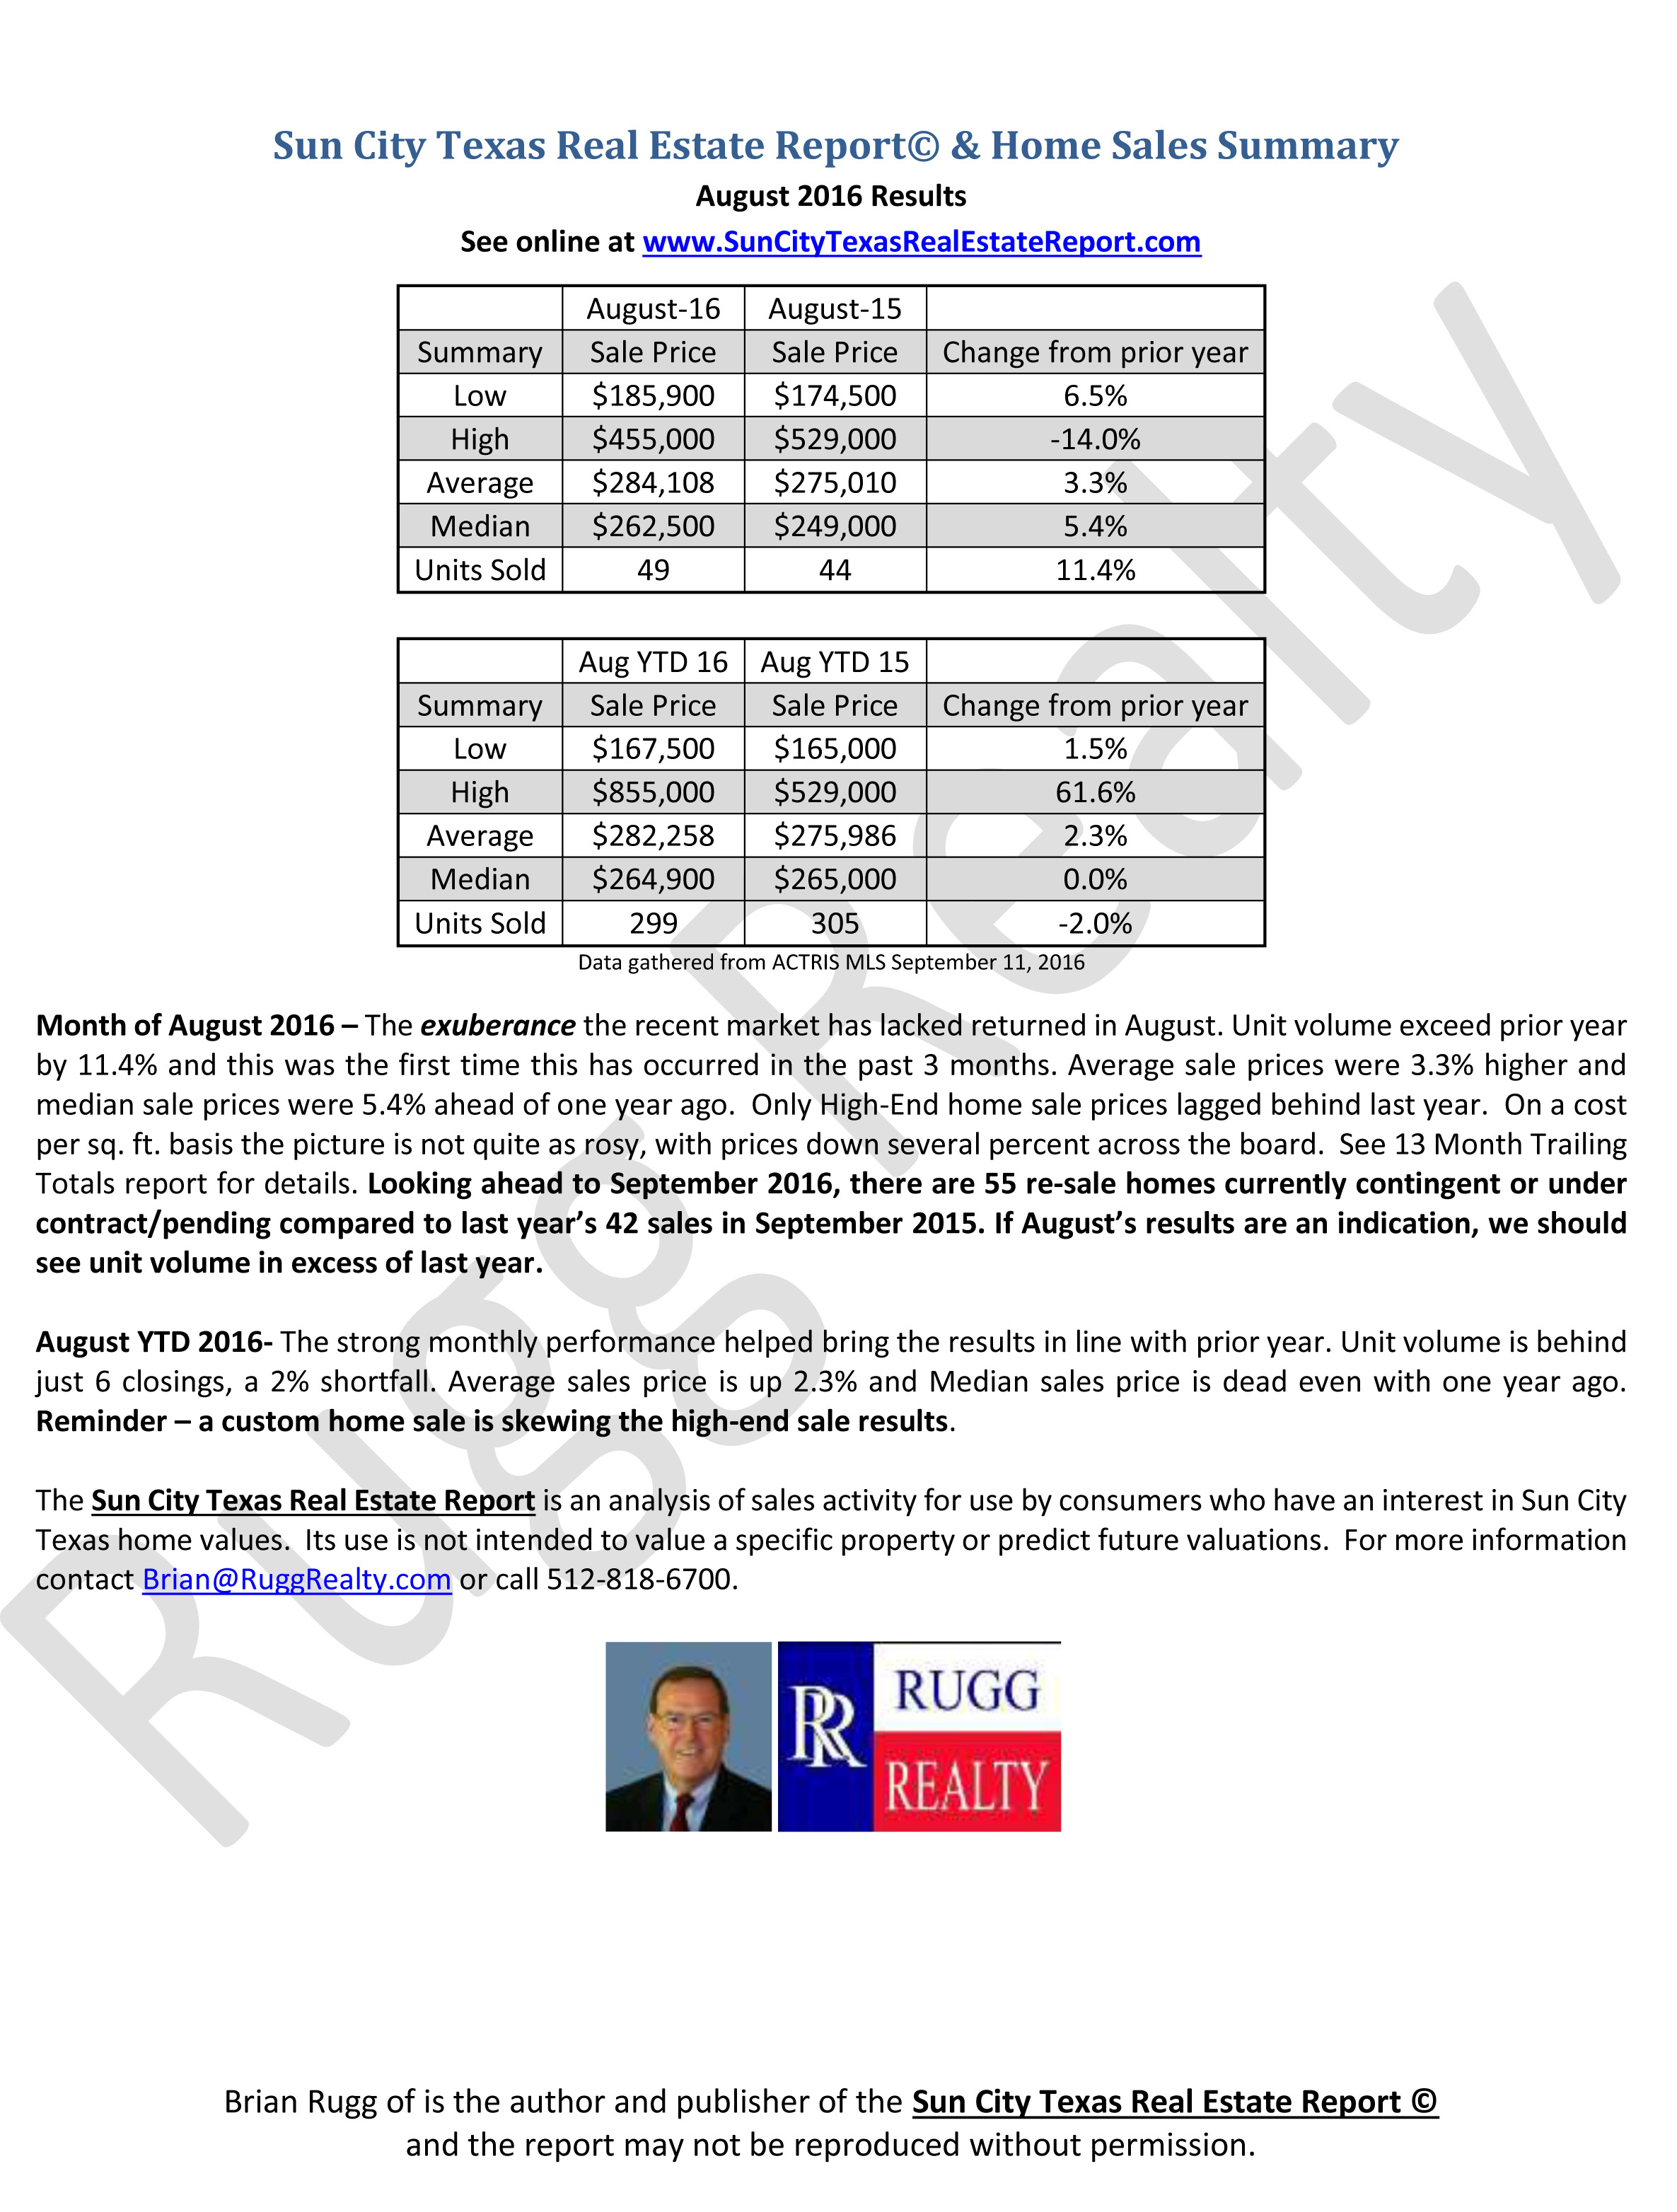 Sun City TX Real Estate Report Aug, '16 Provided by Rugg Realty